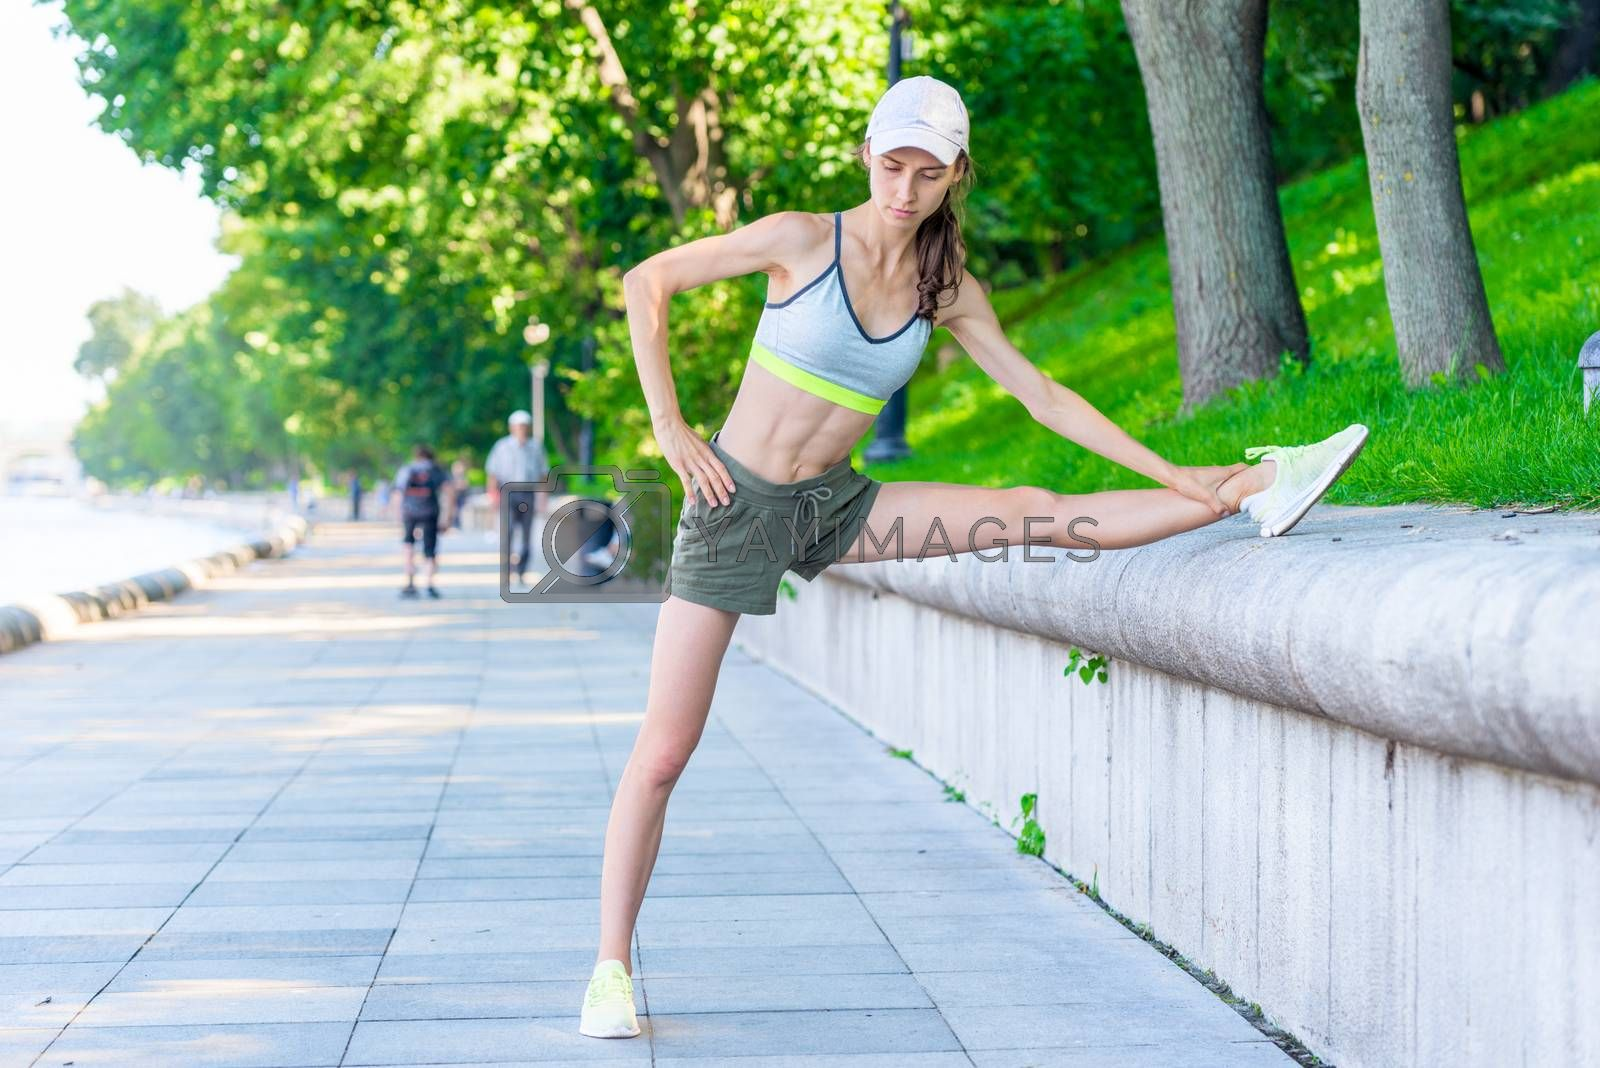 portrait of slender woman athlete who is warming up before joggi by Labunskiy K.